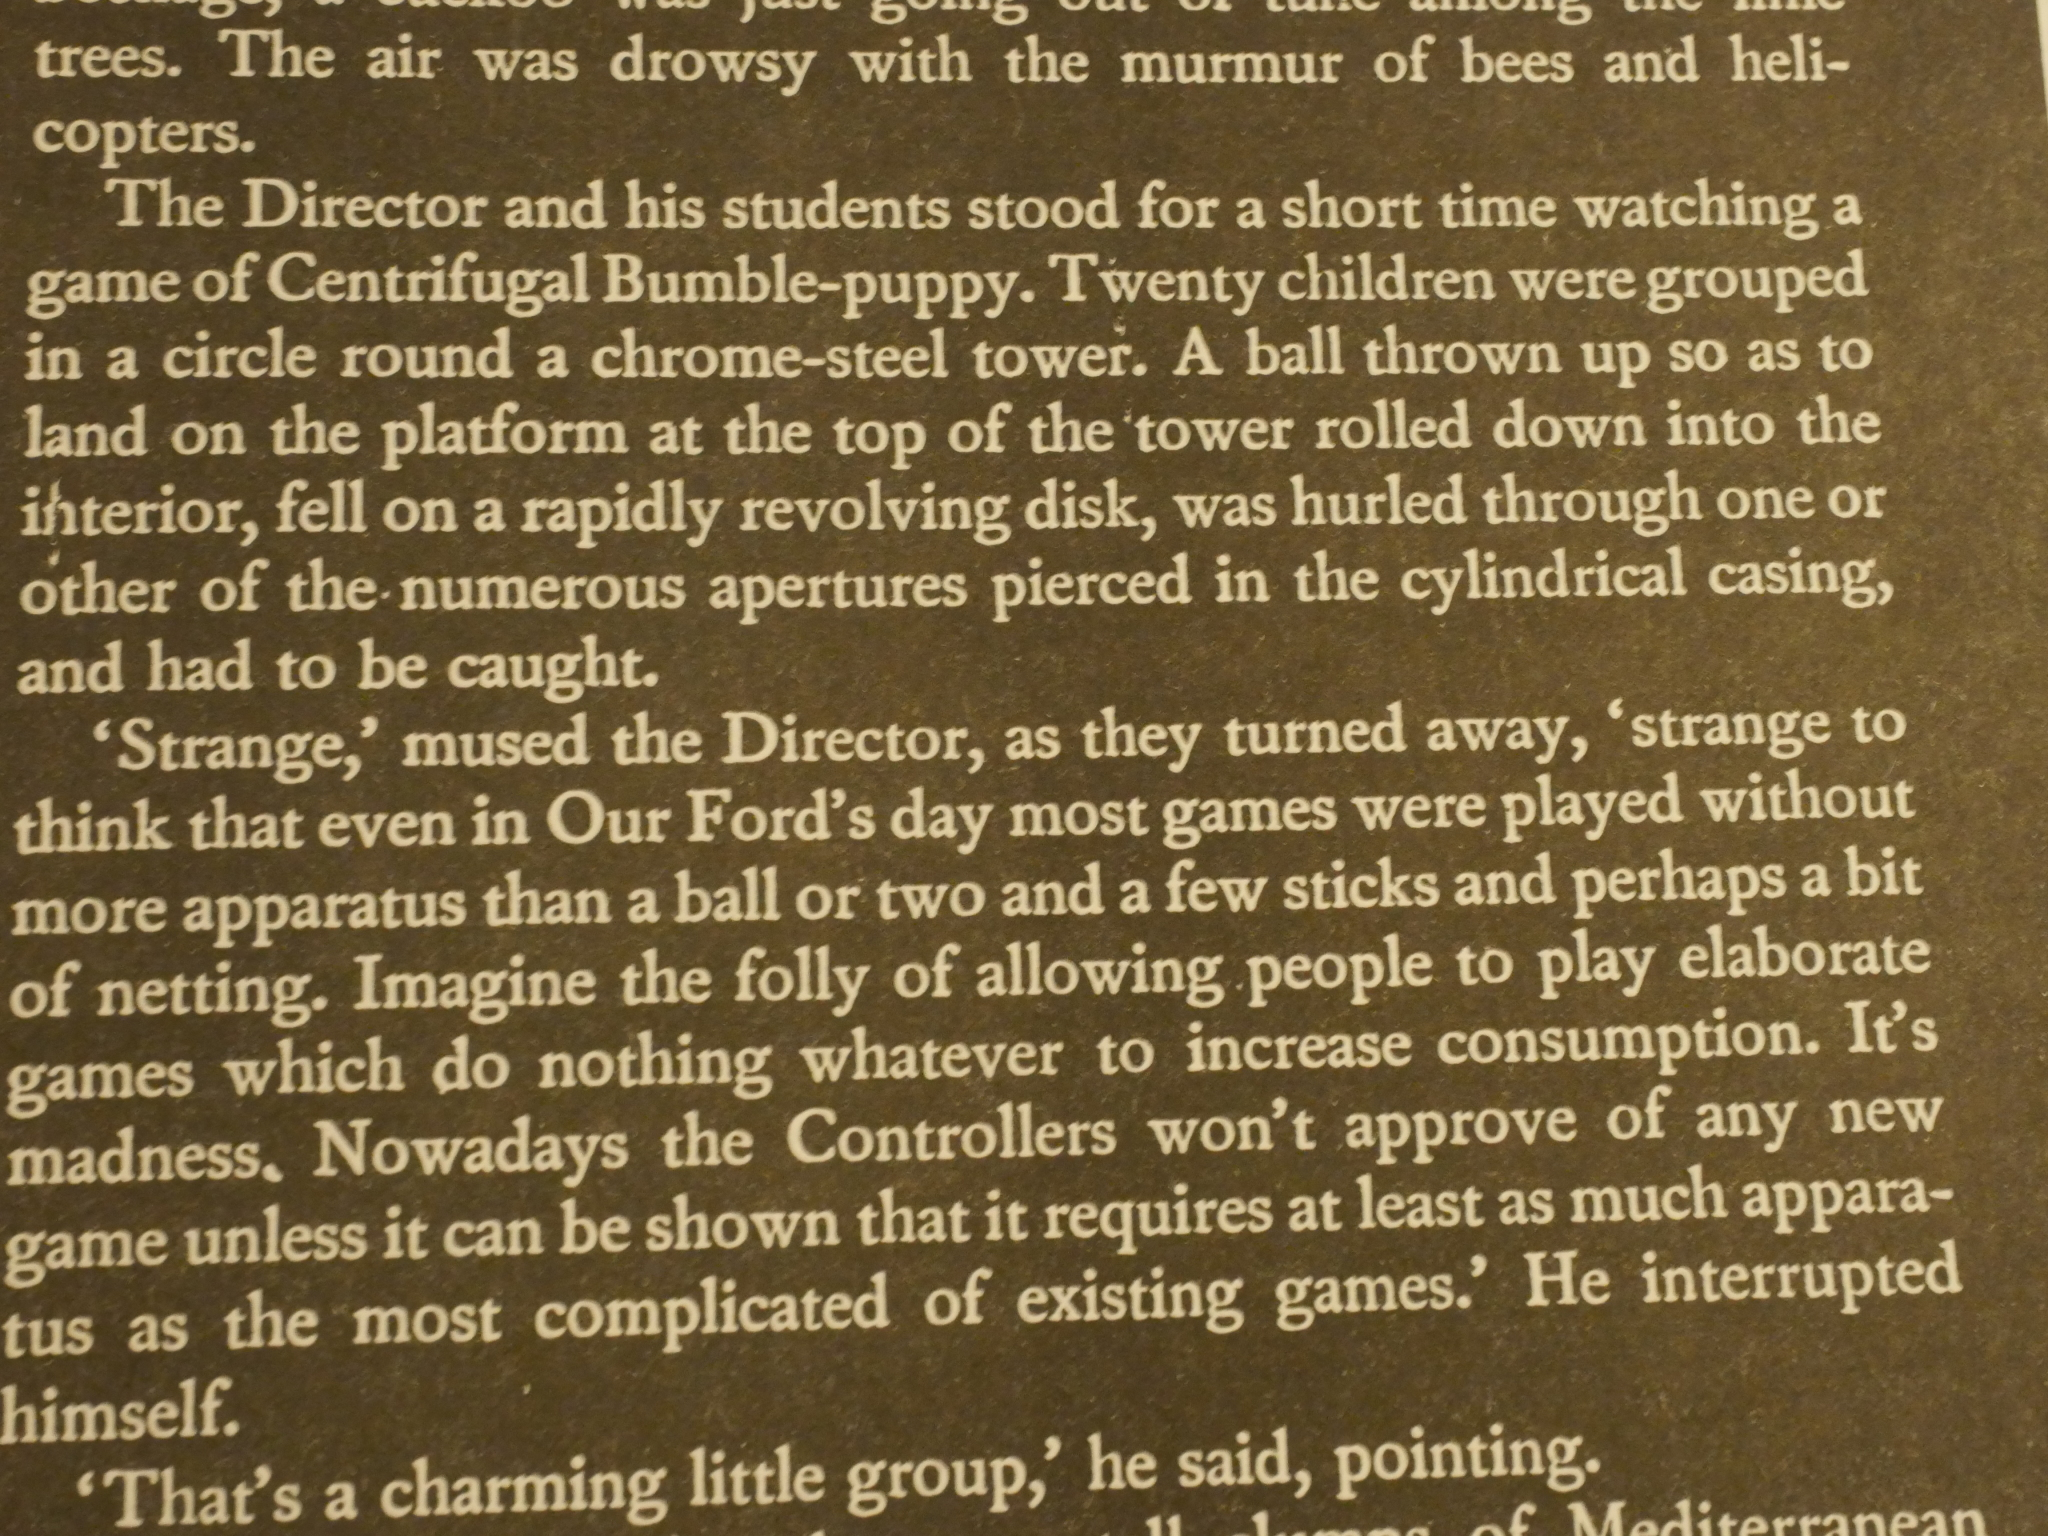 ff1986 honk random thoughts in the fifth issue sacco announces that the magazine will change its to centrifugal bumble puppy from brave new world by aldous huxley because er